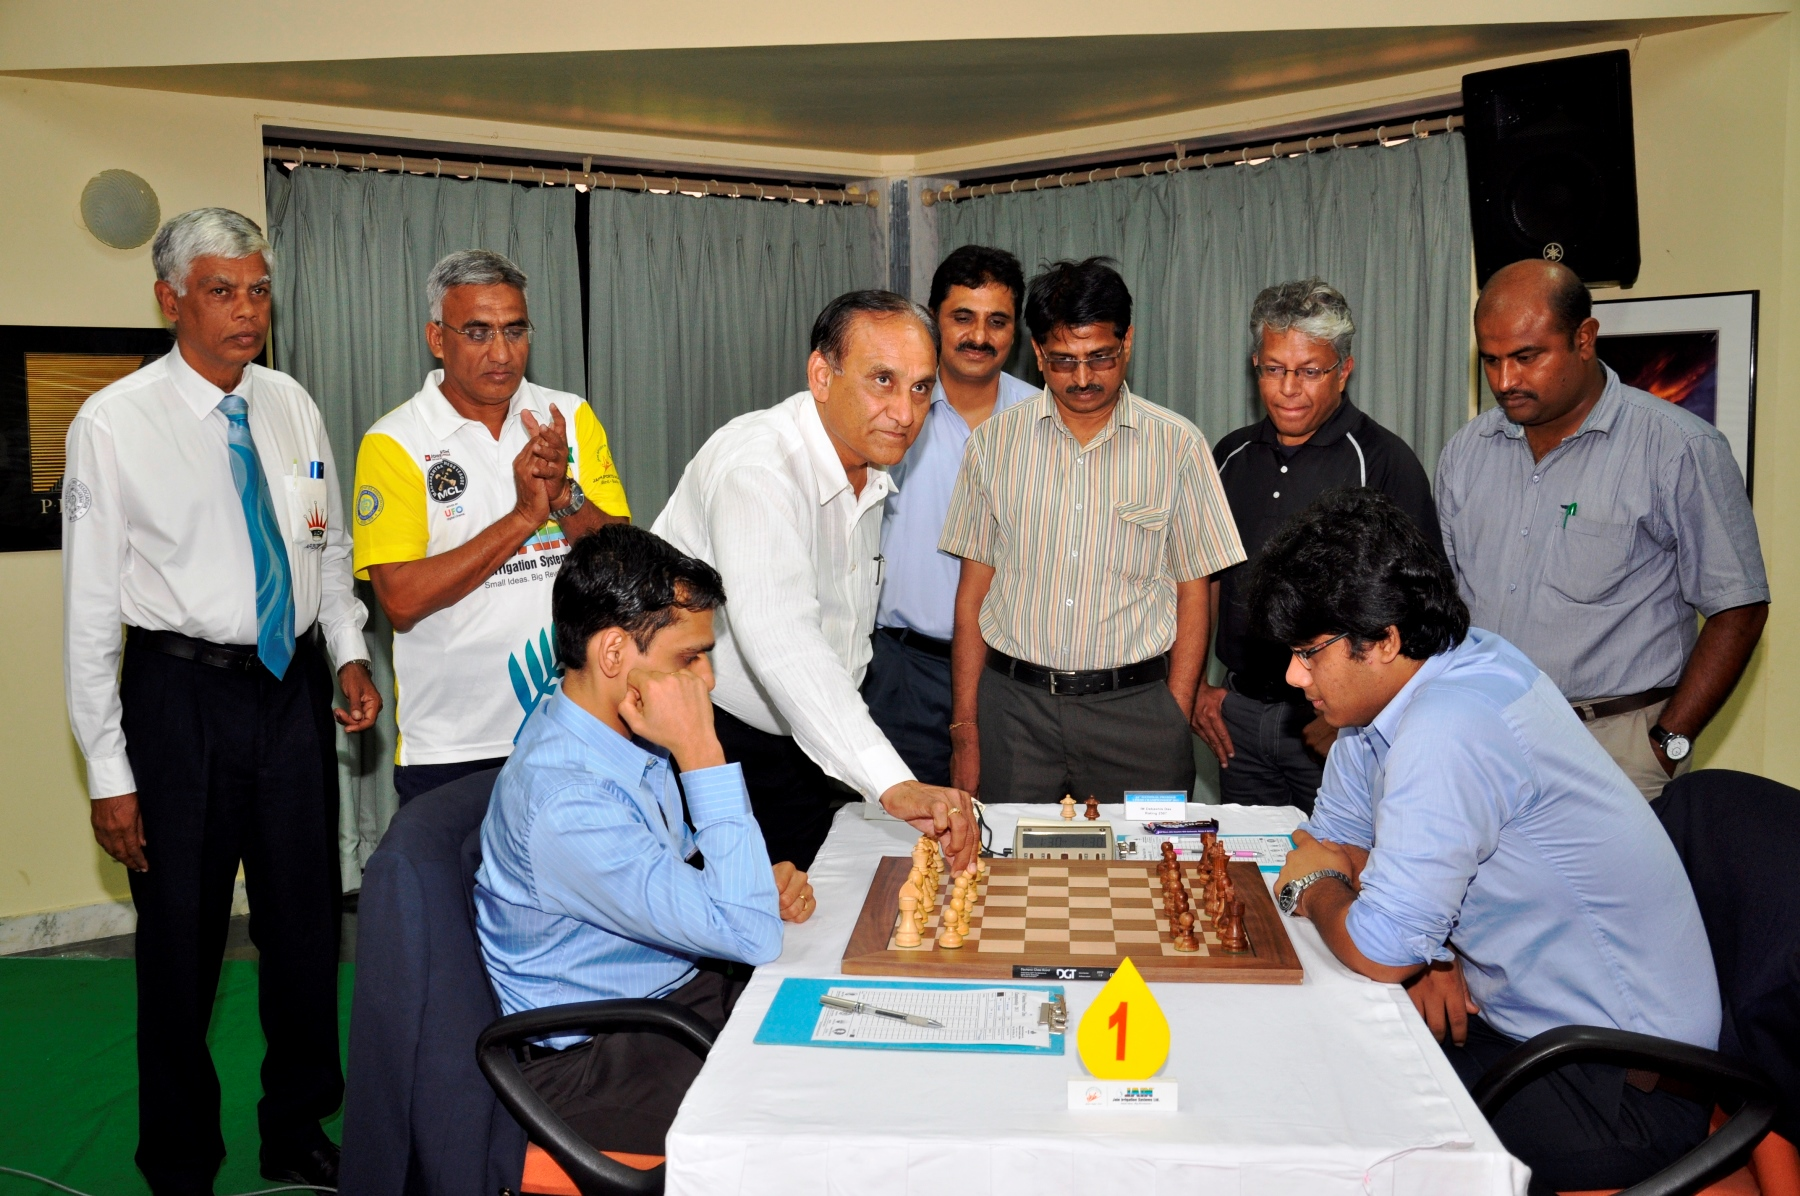 Chief guest Mr. Ramesh Jain inaugurating the seventh round game between GM K Sasikiran and IM Debashis Das. At the extreme left is chief arbiter Prof. R. Anantharam and next to him is organising secretary Faruk Shaik